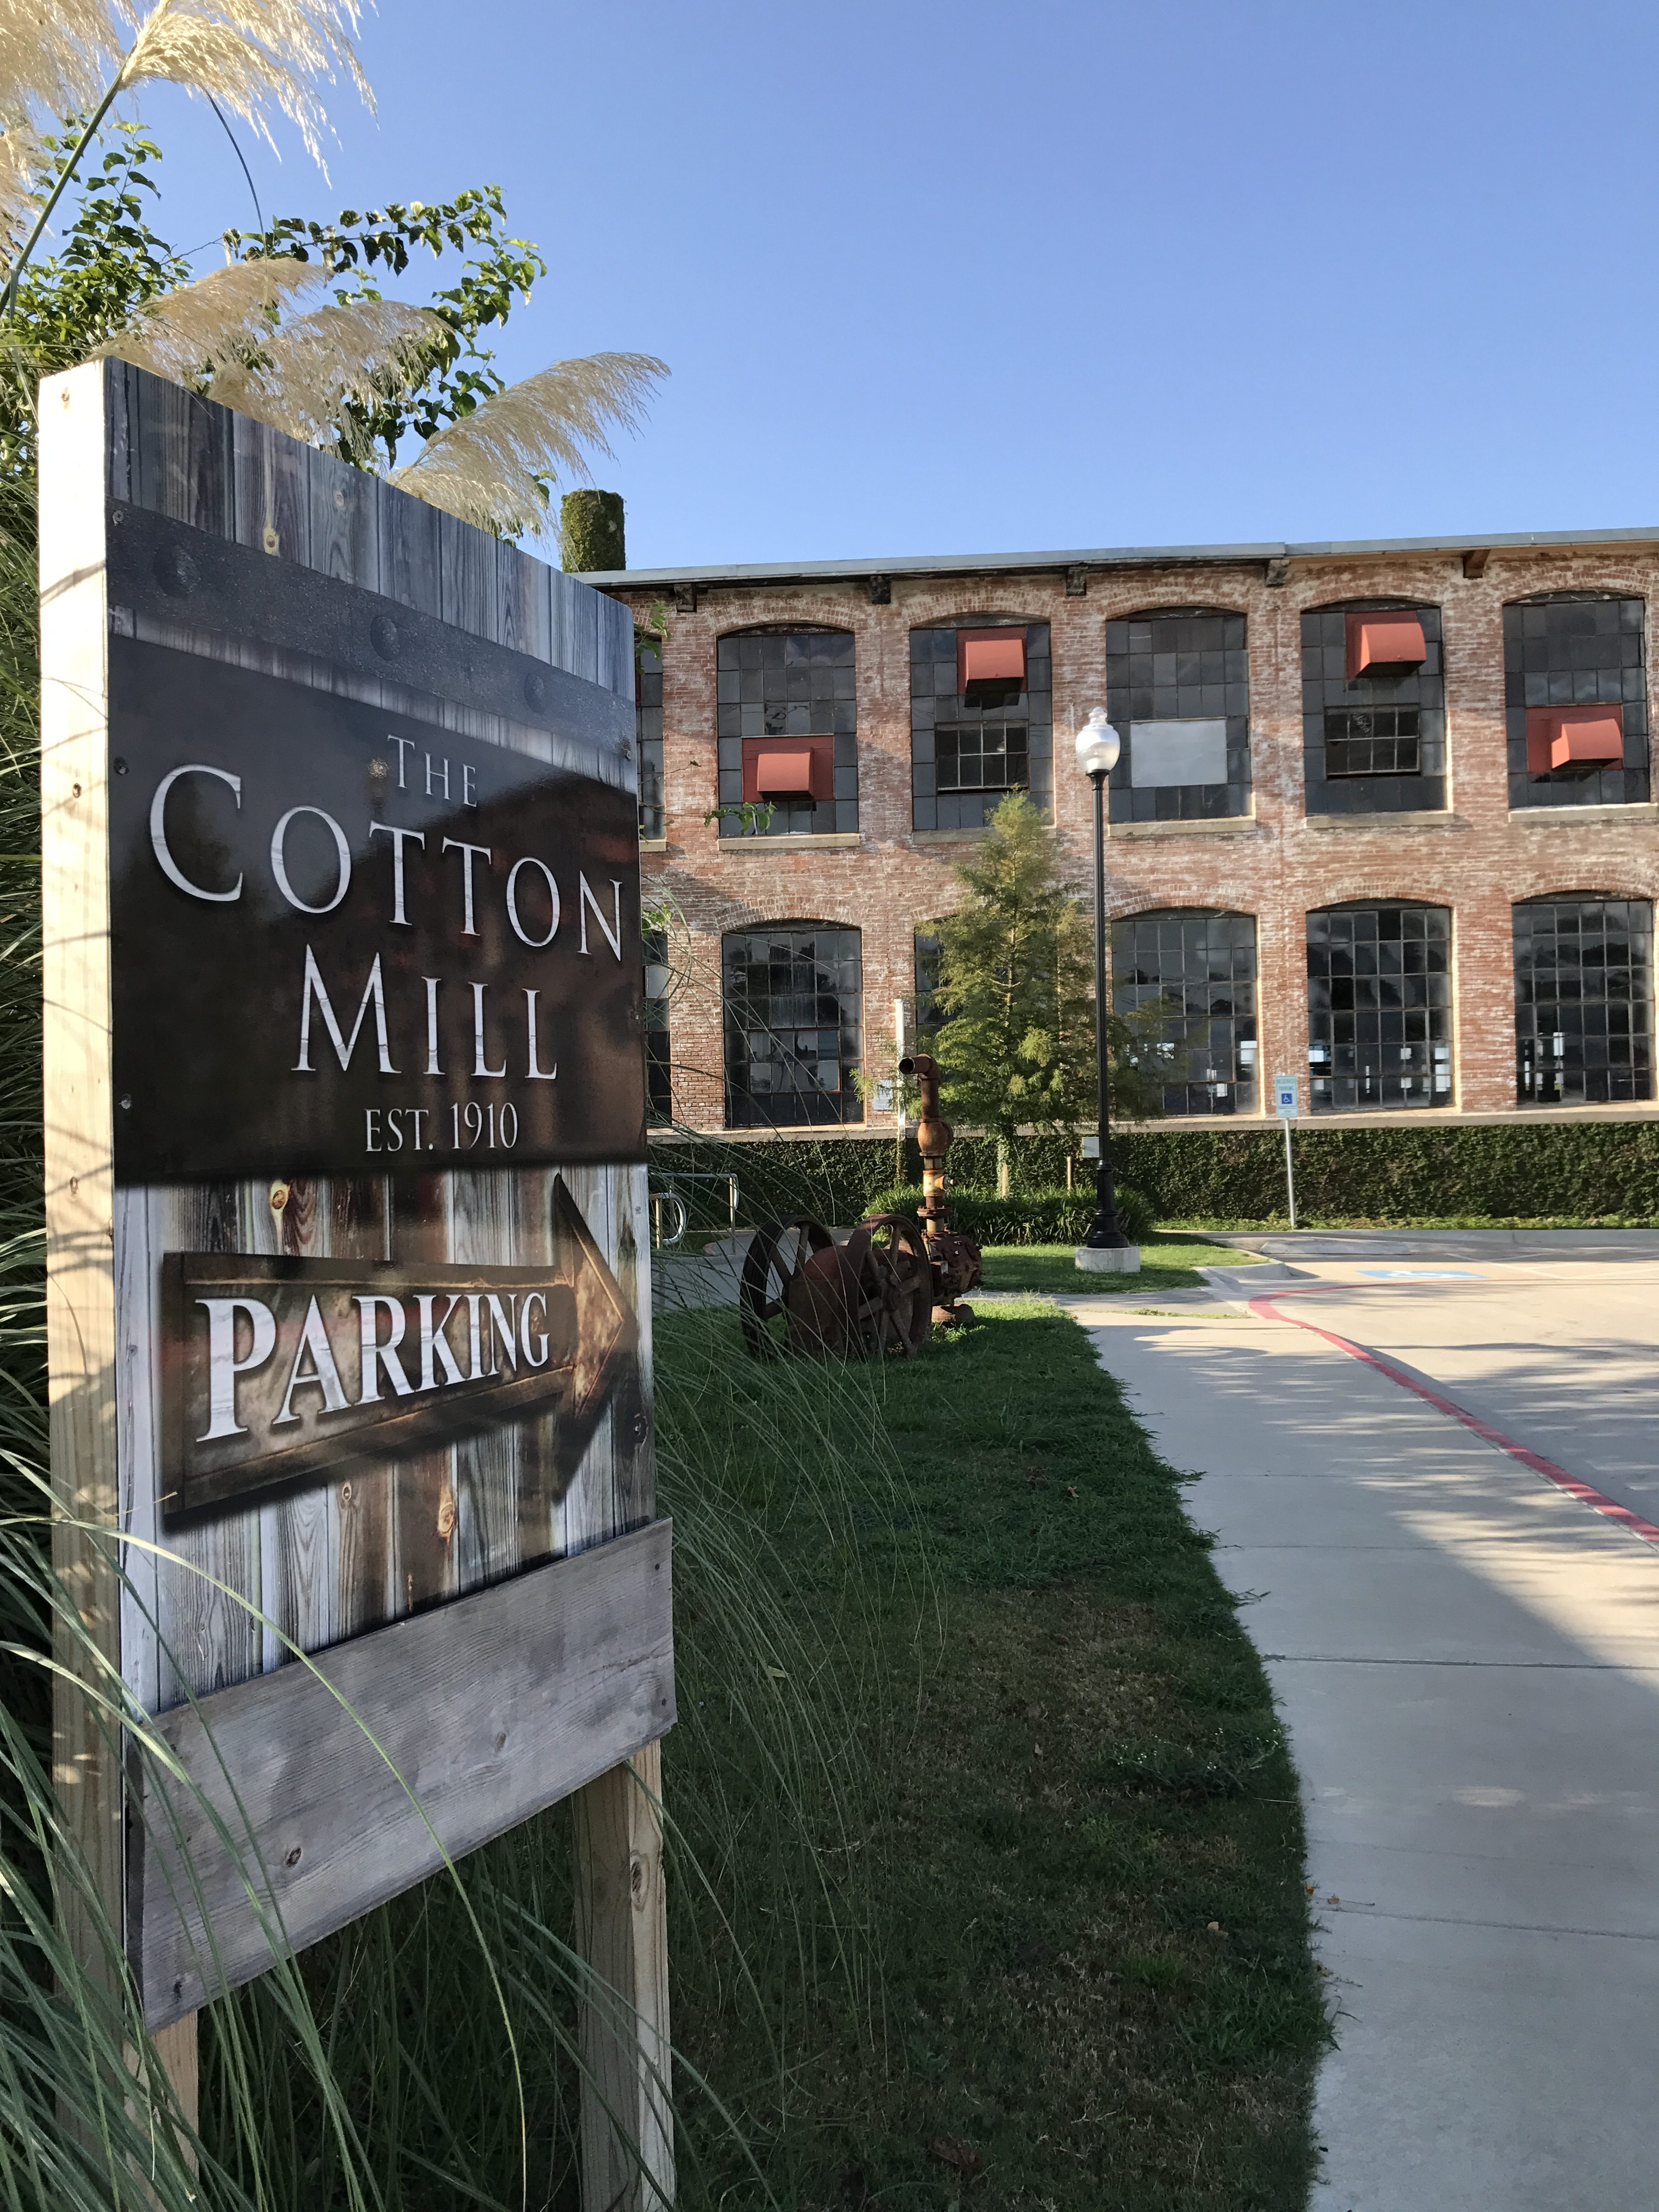 The Cotton Mill event venue is located in McKinney Texas